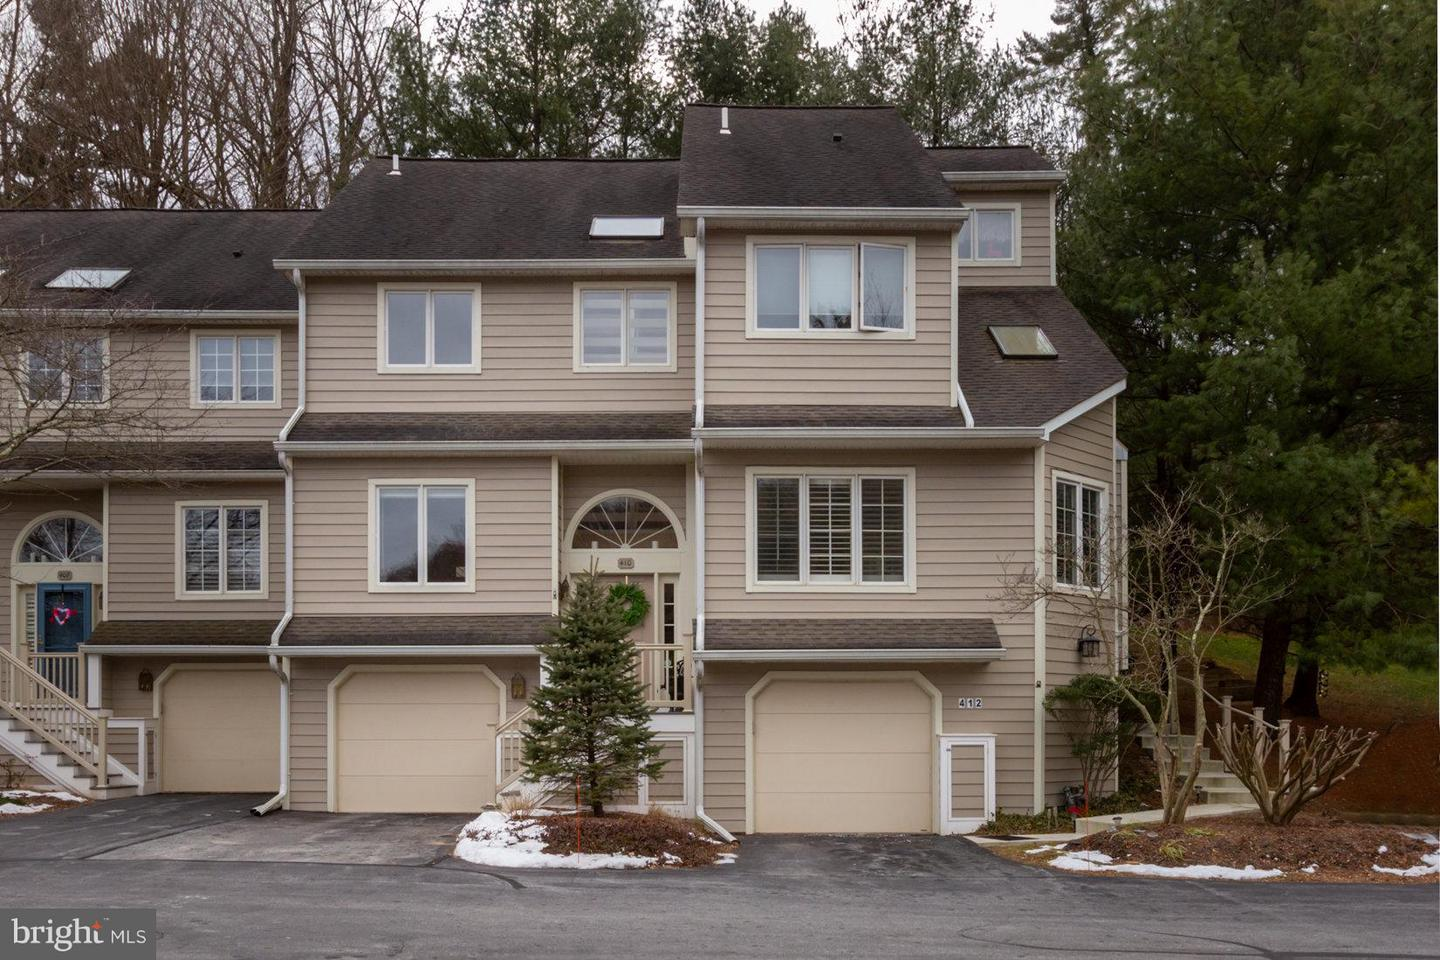 410 Wooded Way Newtown Square, PA 19073